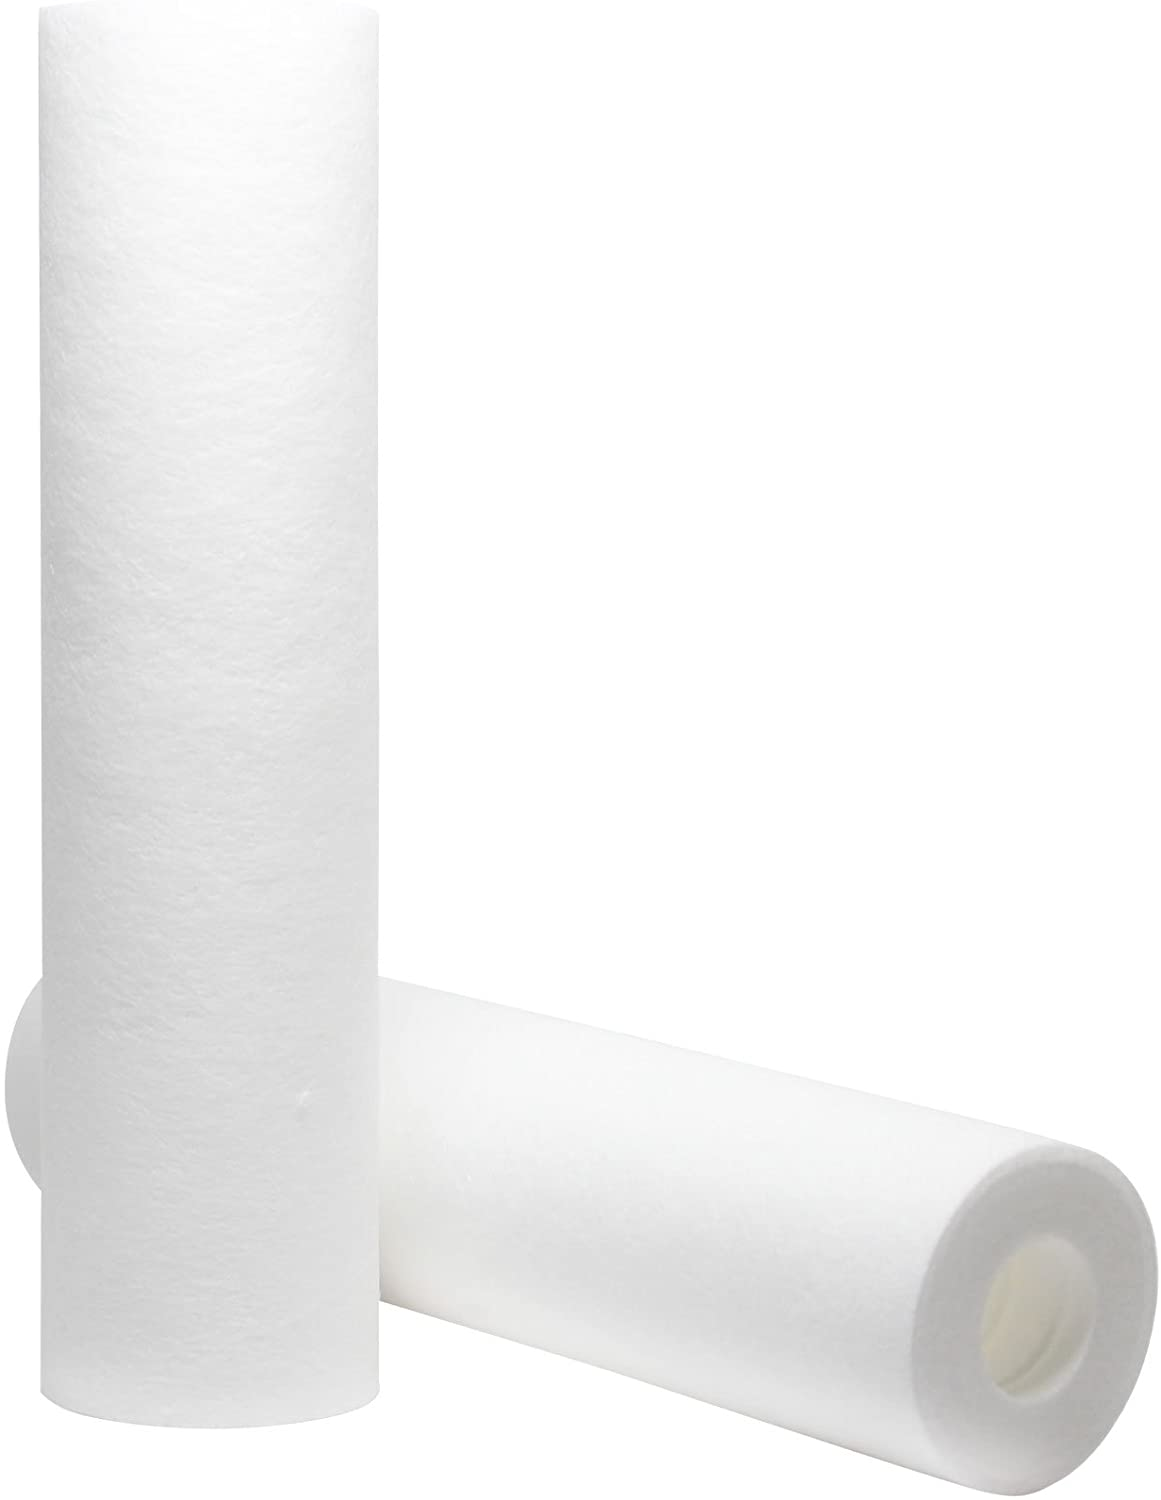 2-Pack Replacement for Hydronix HF2-10BLBK38 Polypropylene Sediment Filter - Universal 10-inch 5-Micron Cartridge Compatible with Hydronix HF2-10BLBK38 NSF listed 10